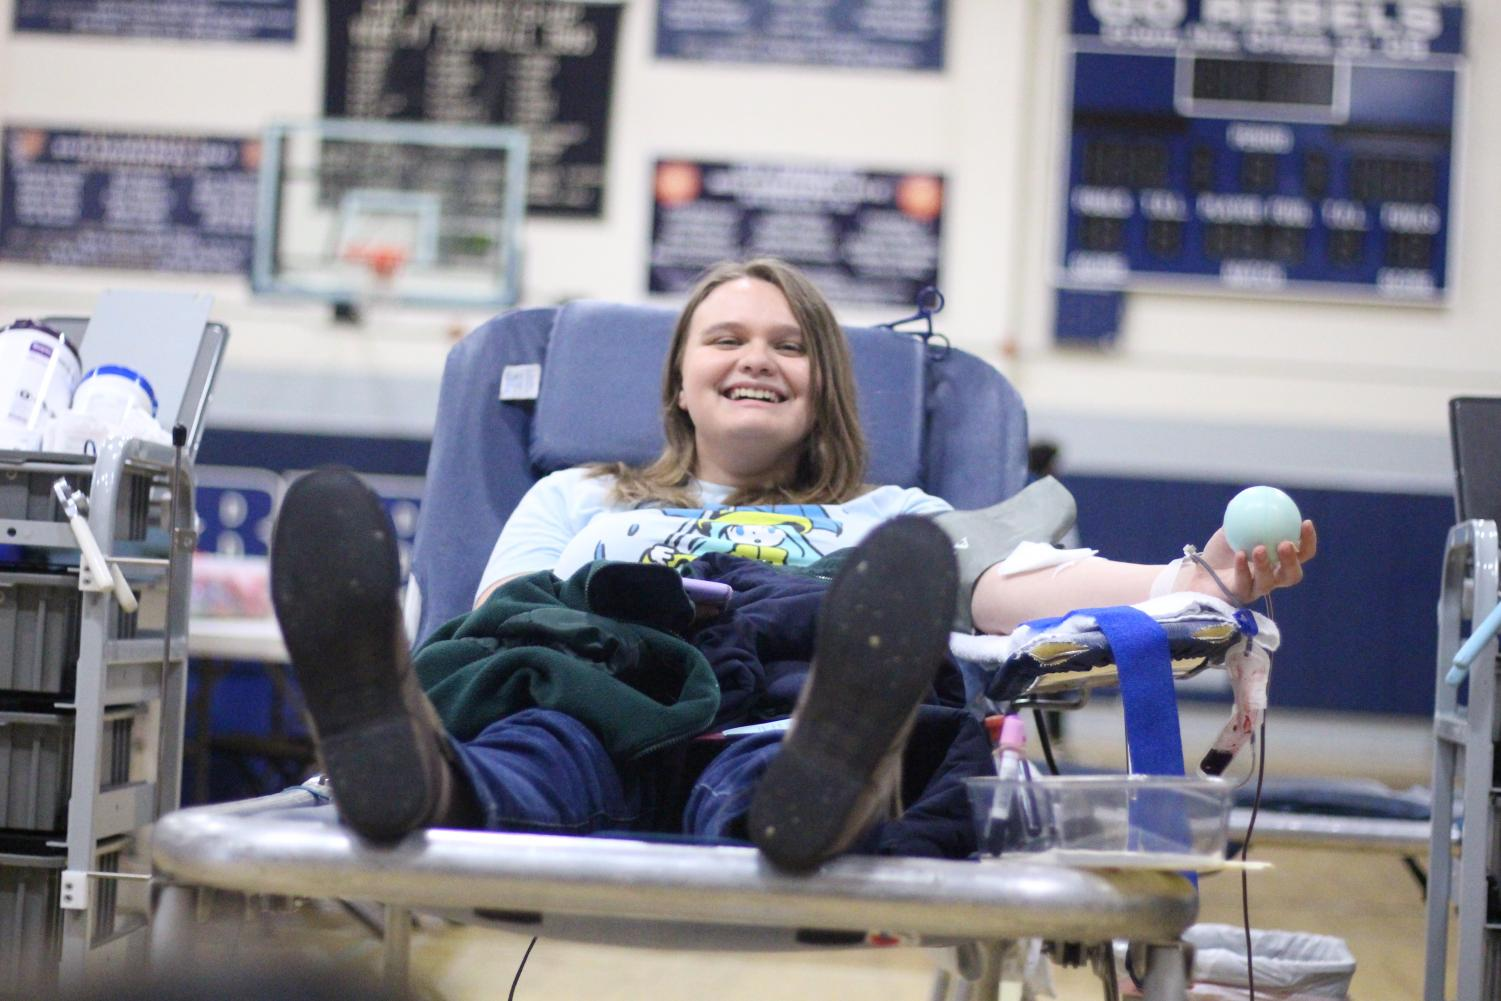 Lindsay Browne '20 donates blood at the blood drive.